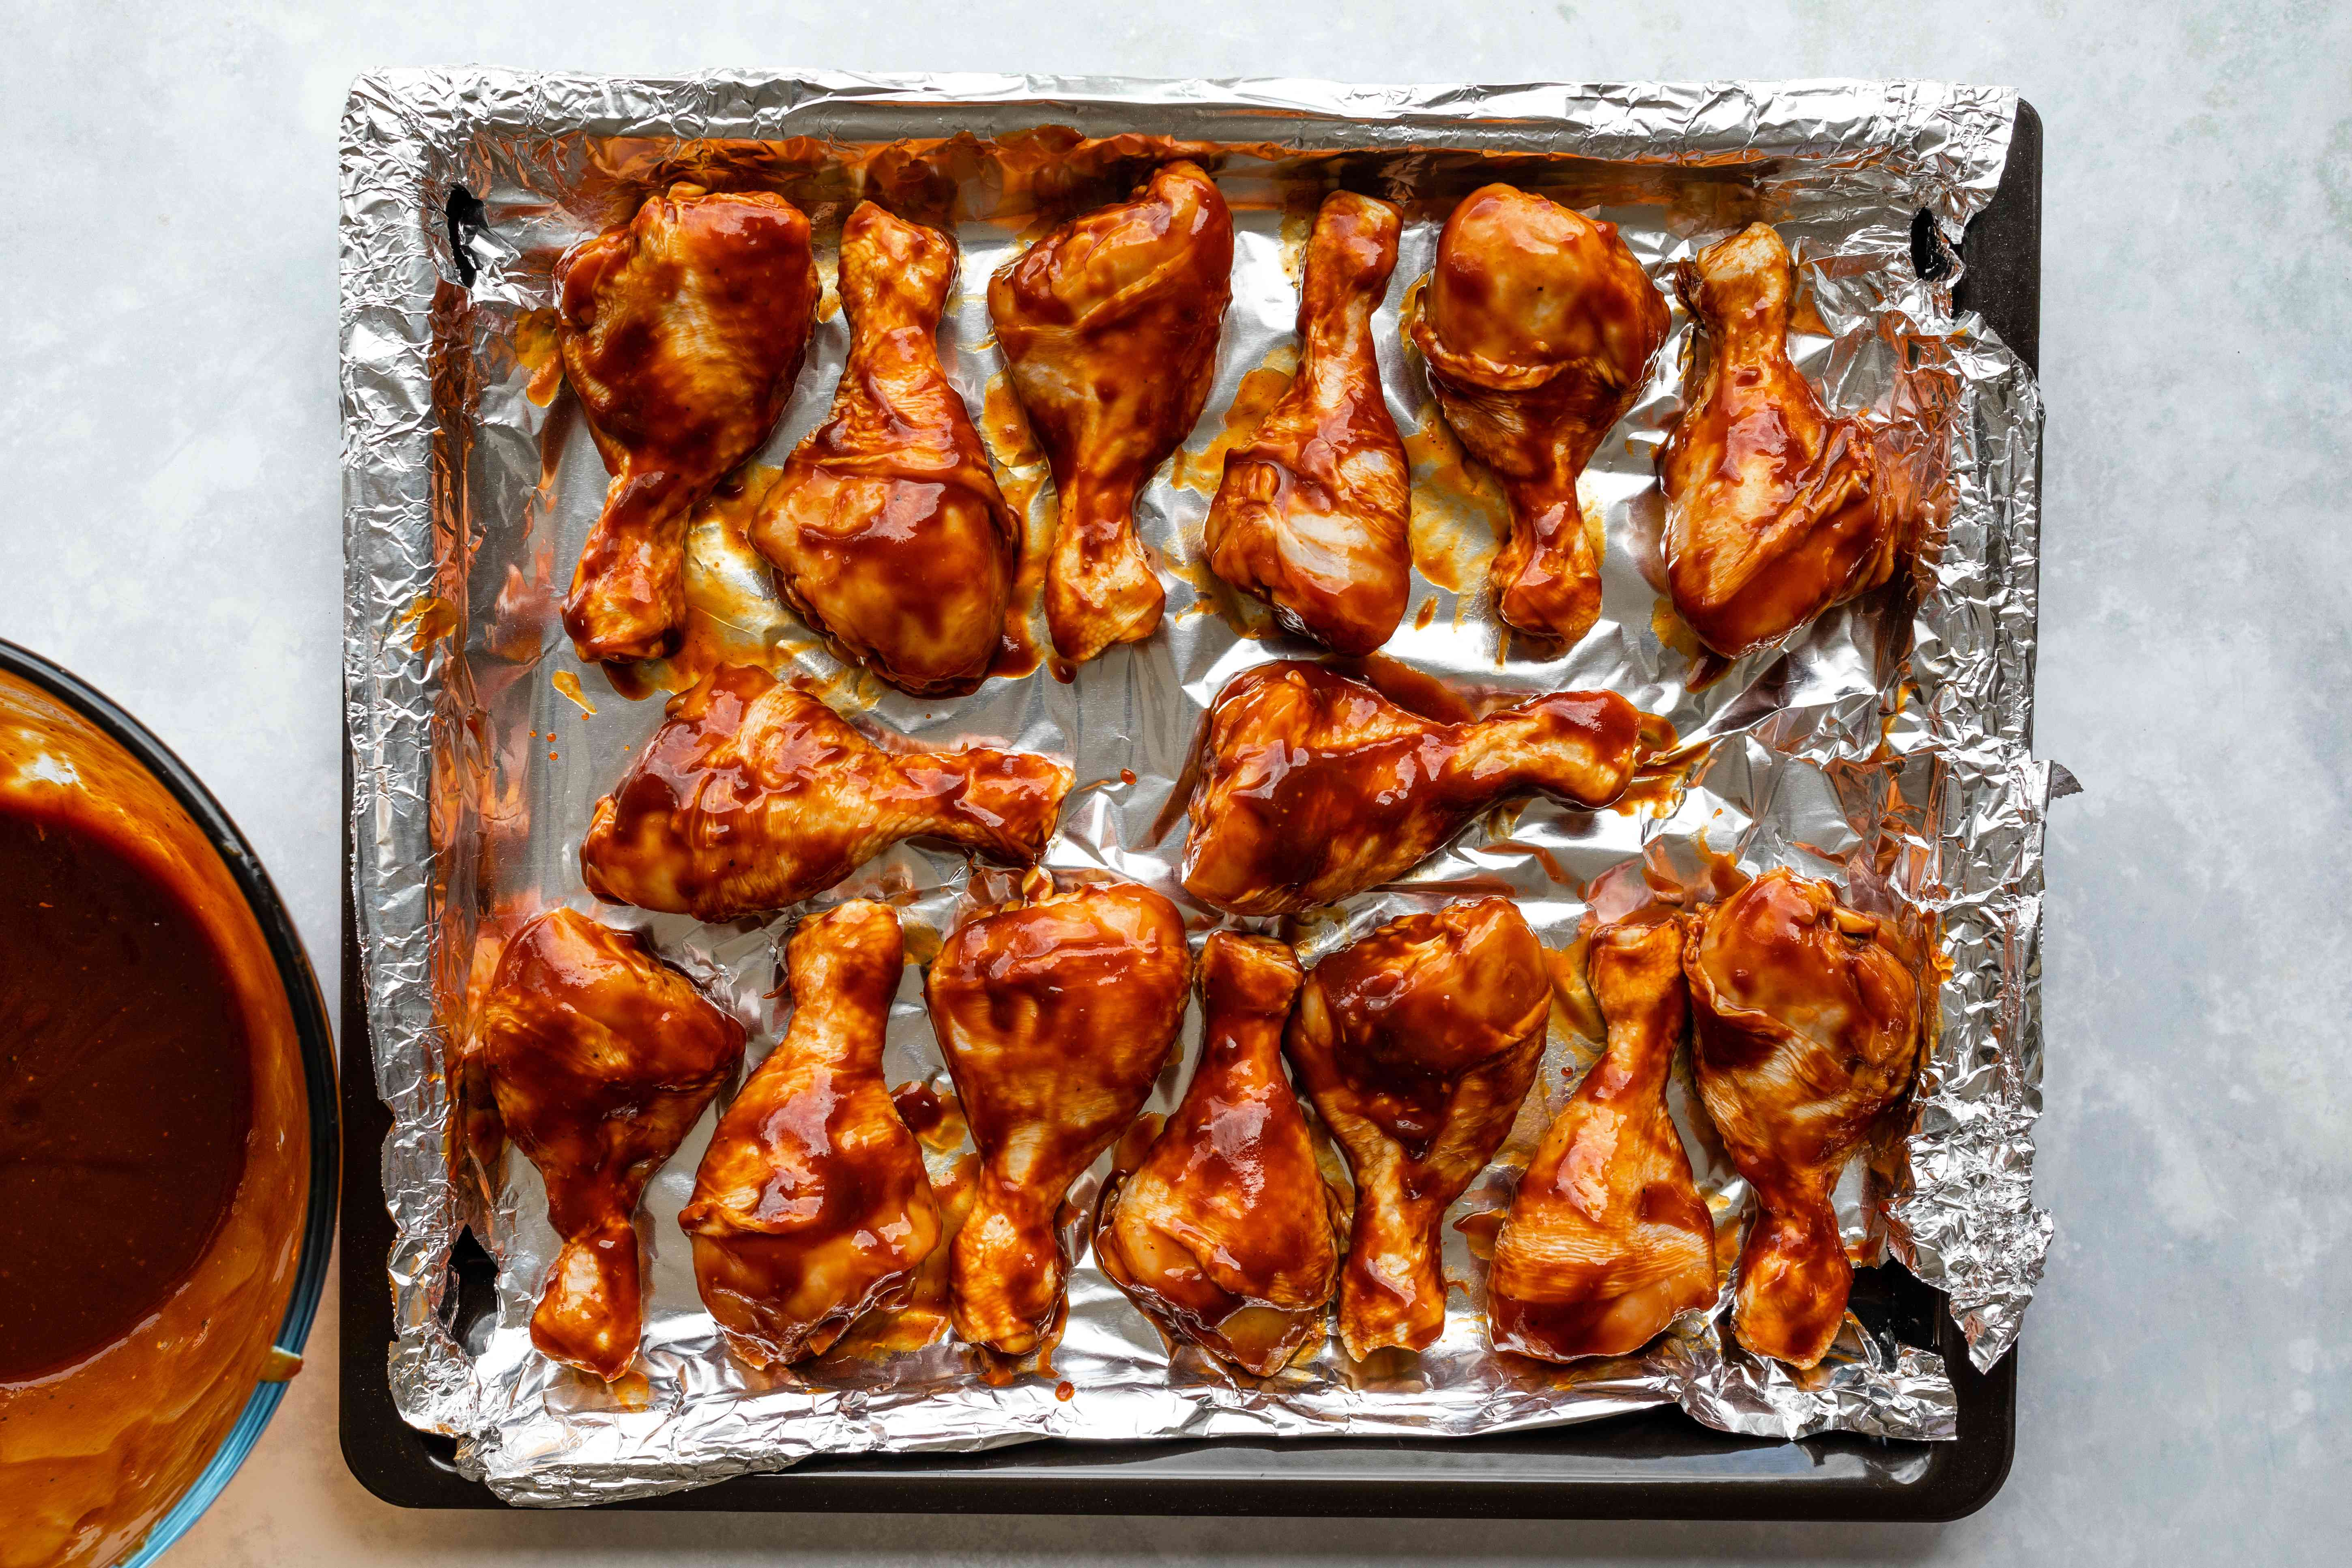 Chicken wings on the baking sheet